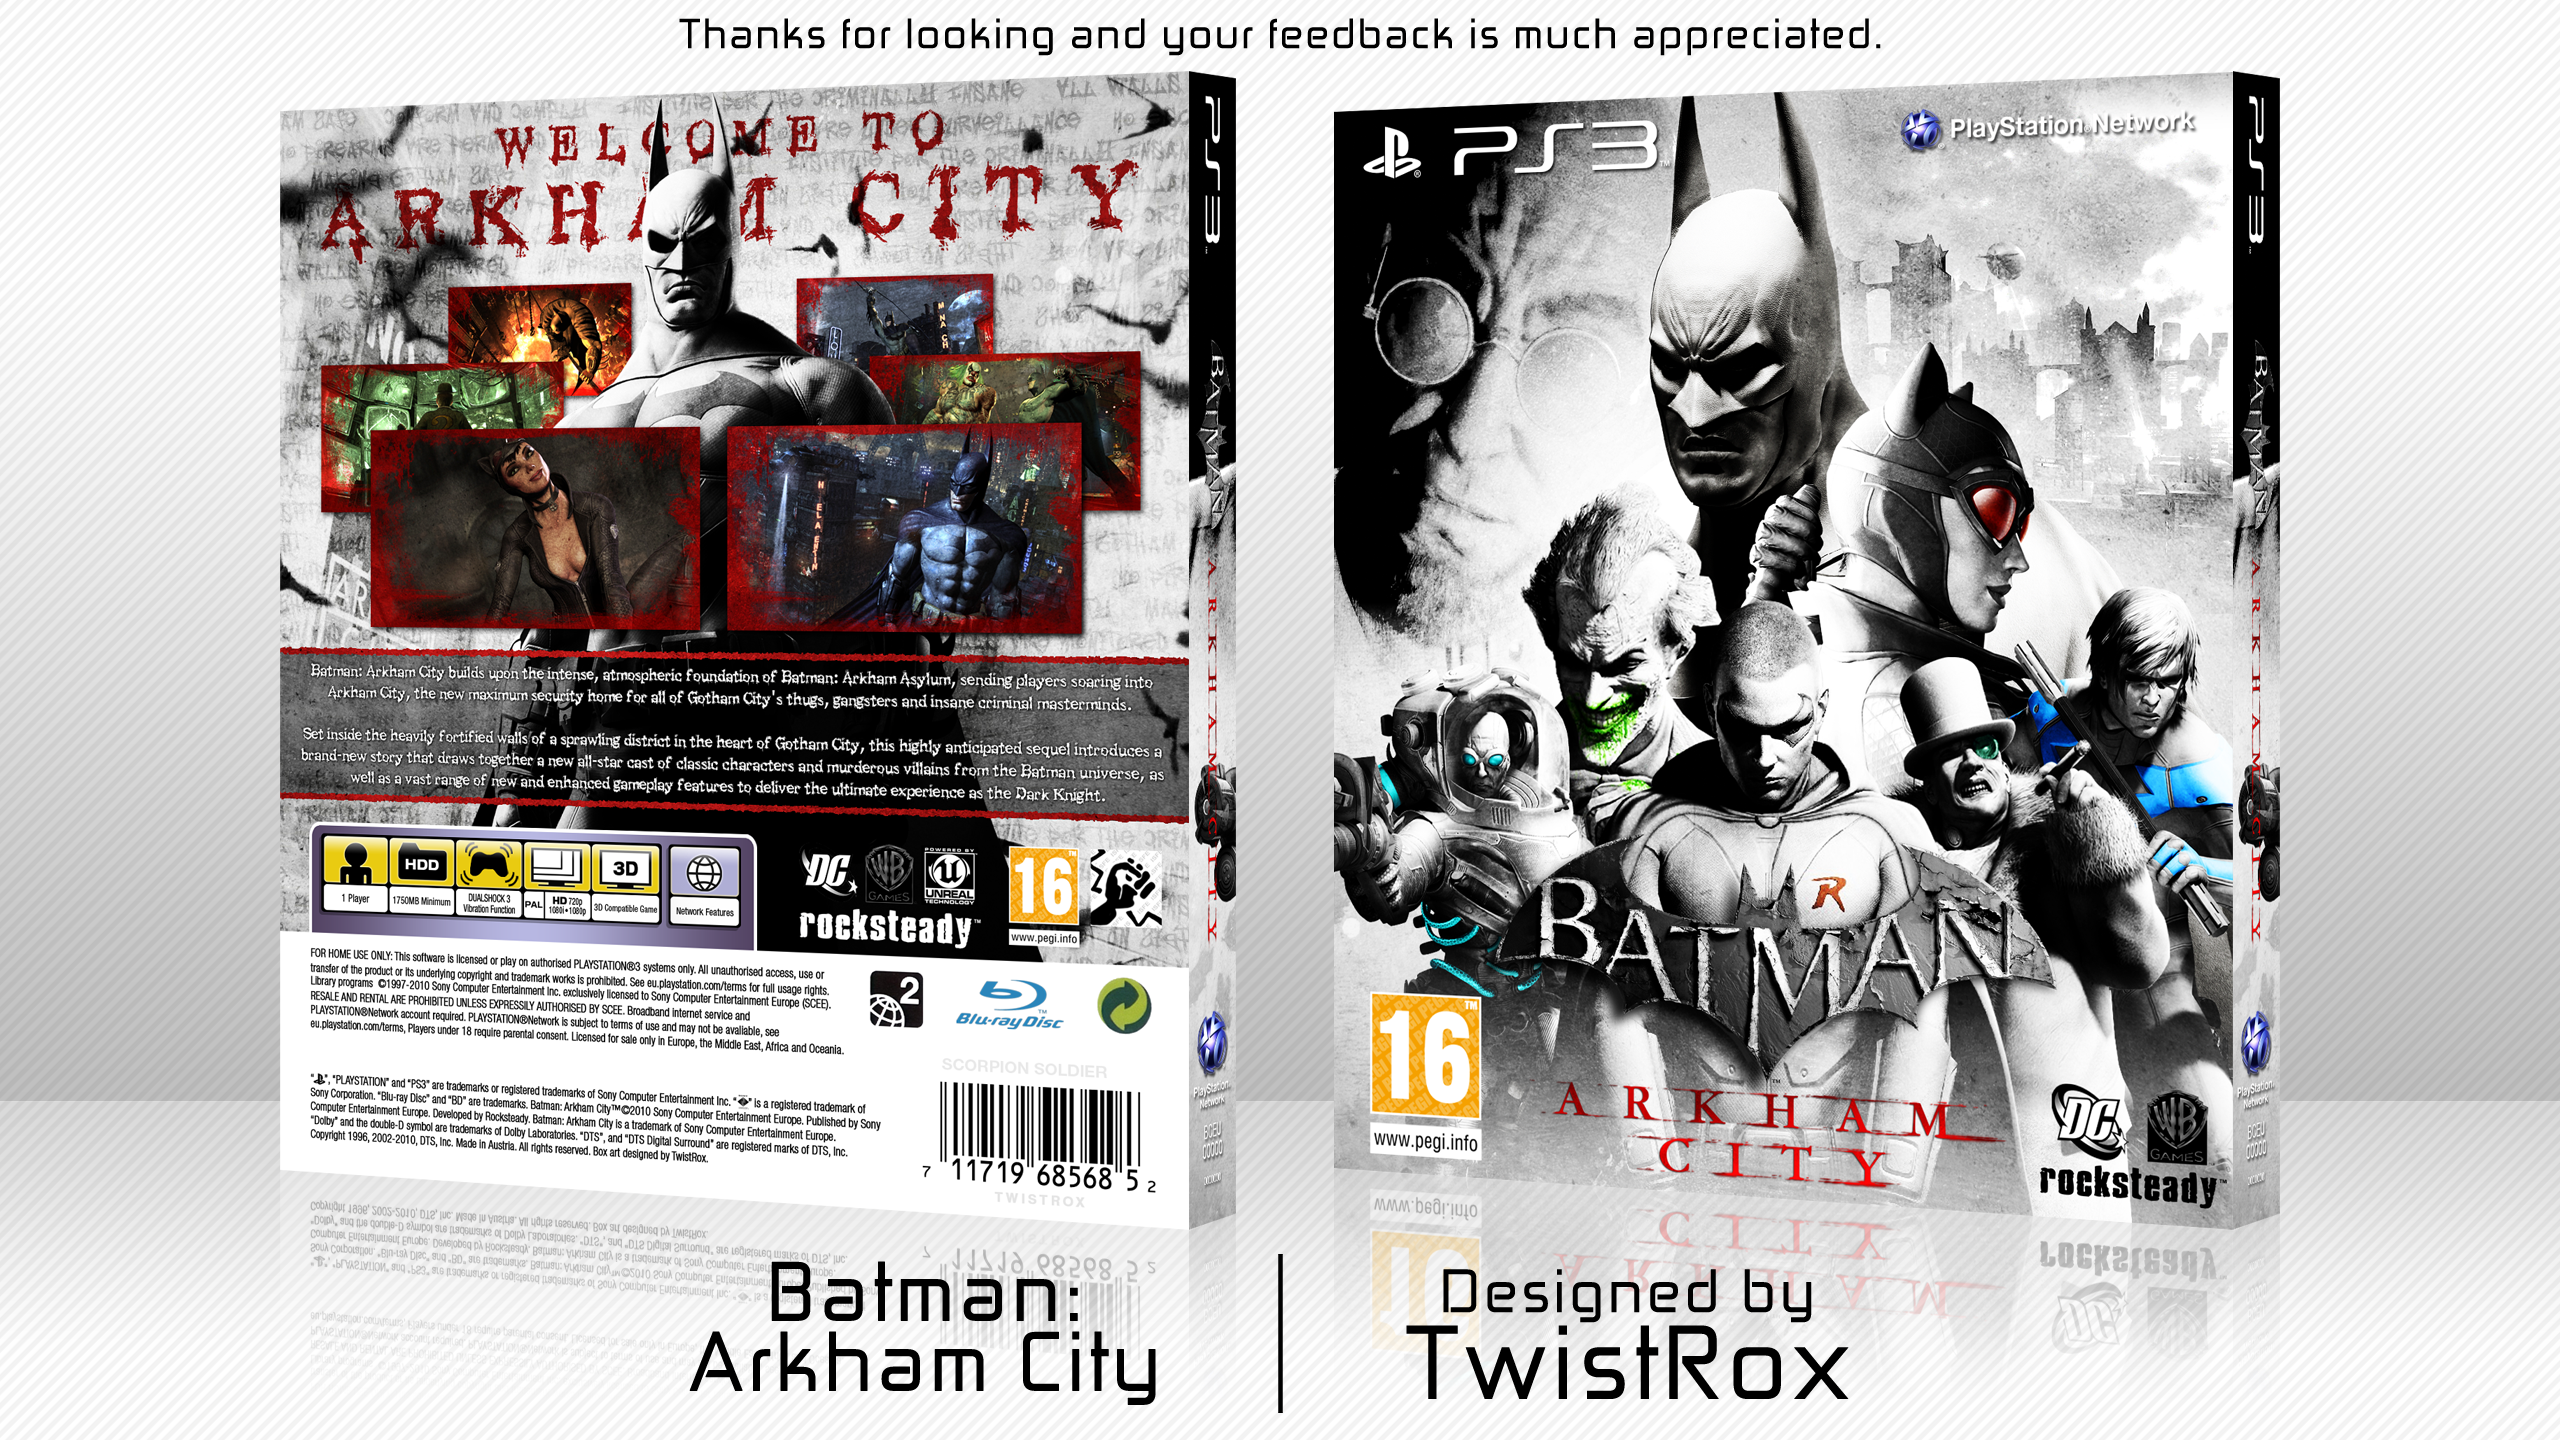 Batman: Arkham City box cover